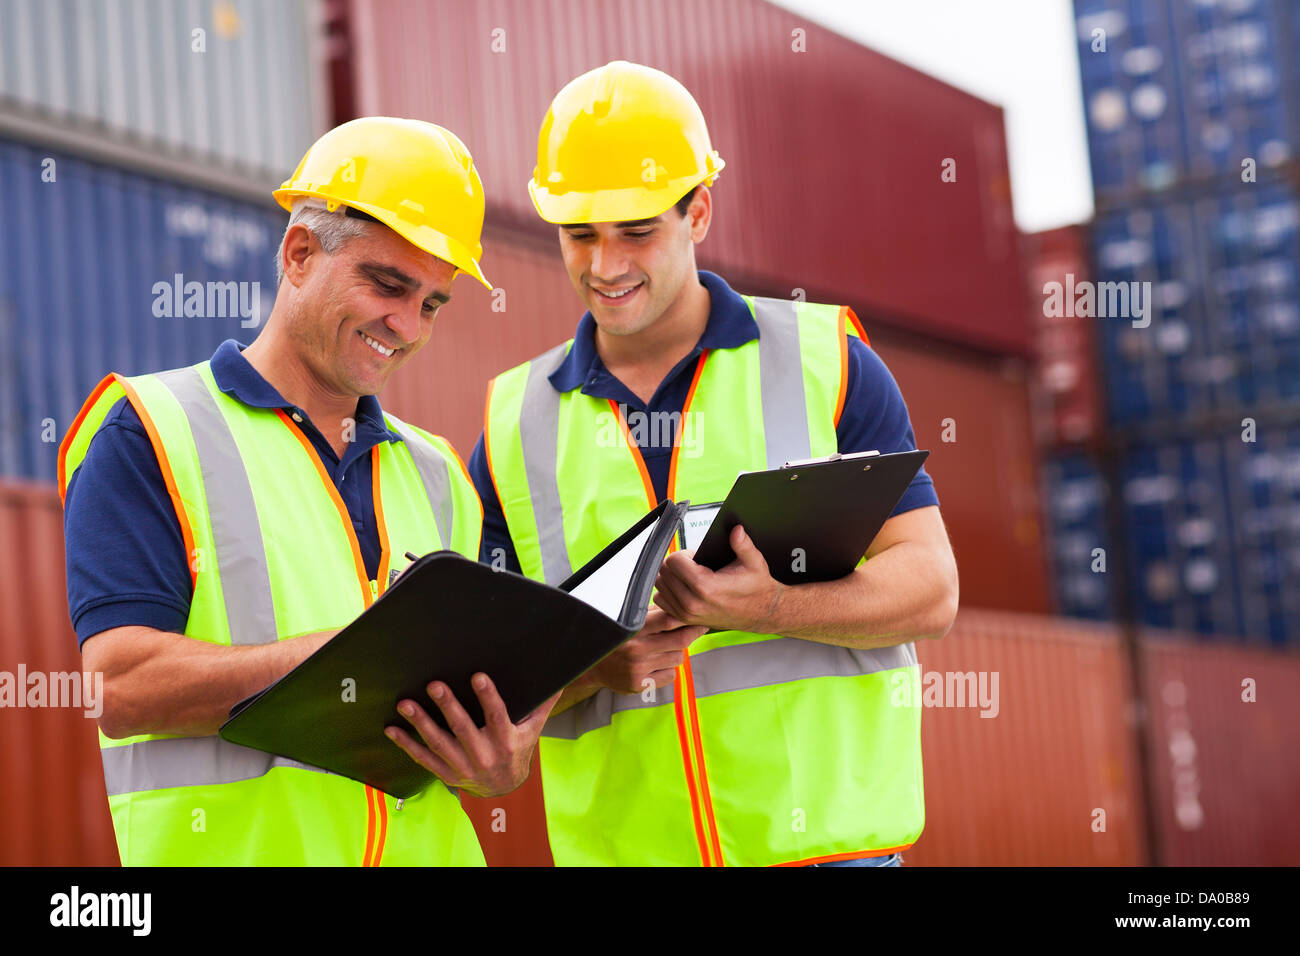 two harbor workers working at container yard - Stock Image